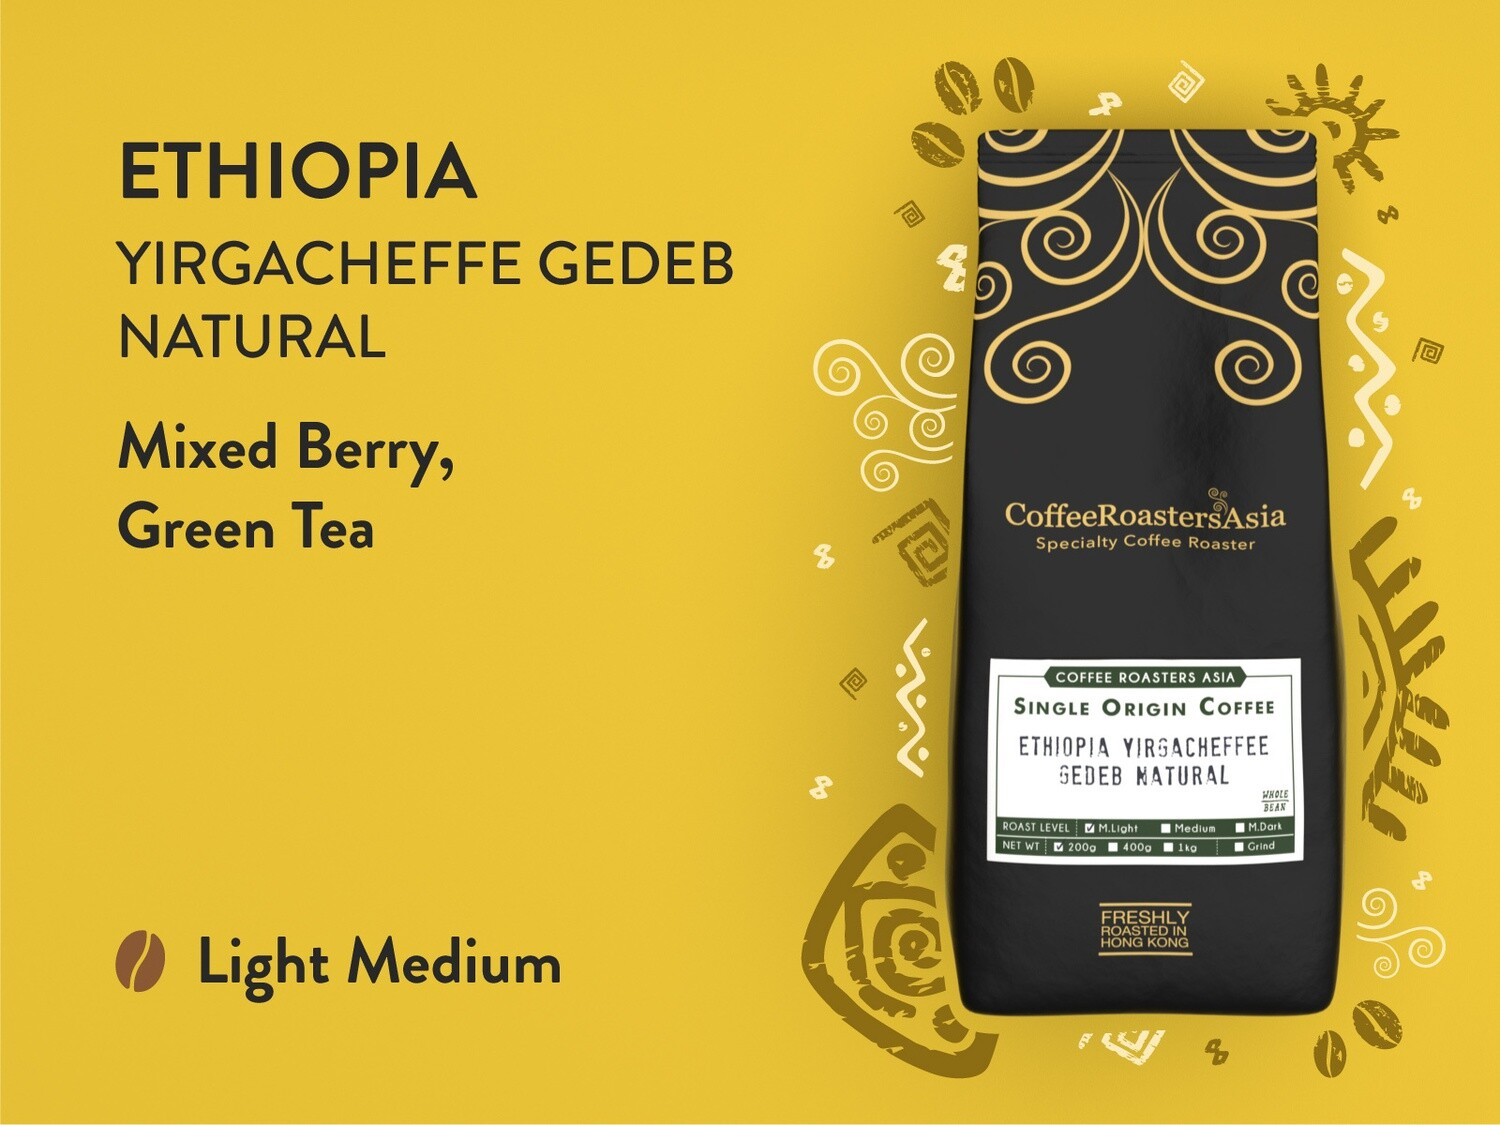 Ethiopia Yirgacheffe Gedeb Natural Coffee *L